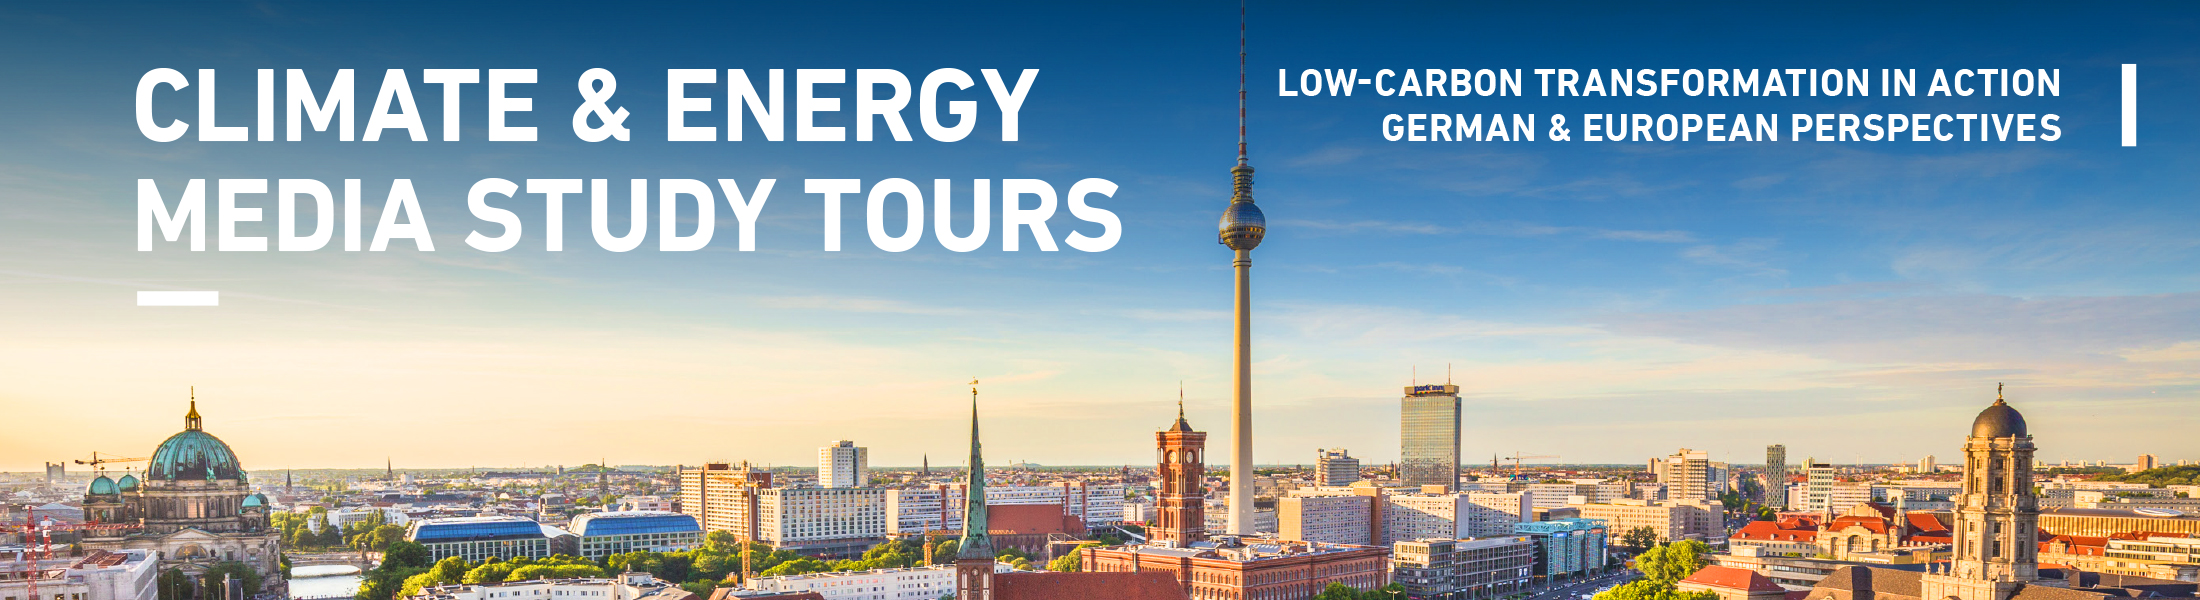 Включете се в Climate and Energy Media Study Tours в Германия